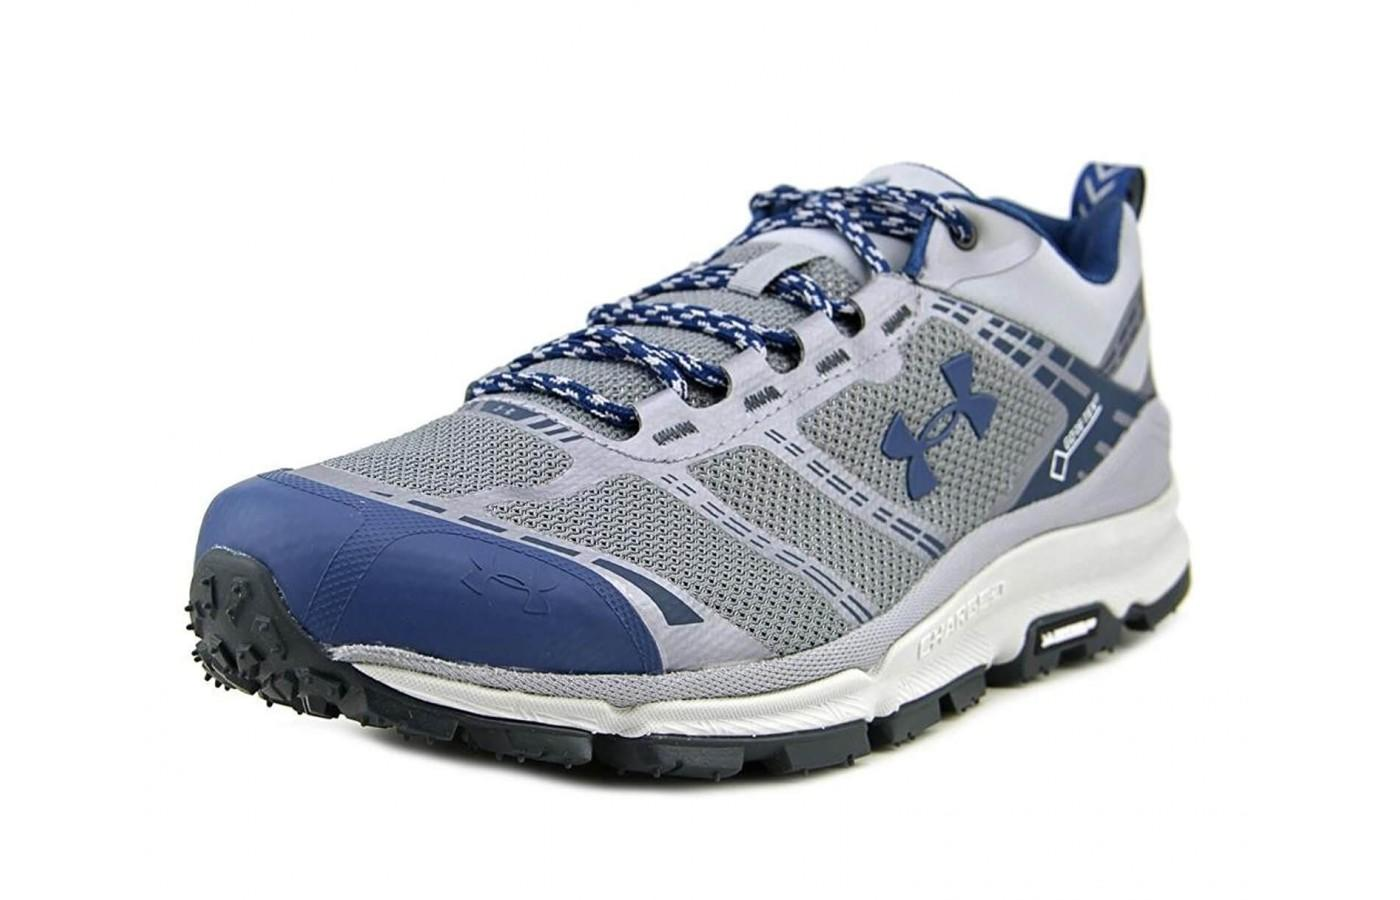 Under Armour Verge Low GTX diagonal view